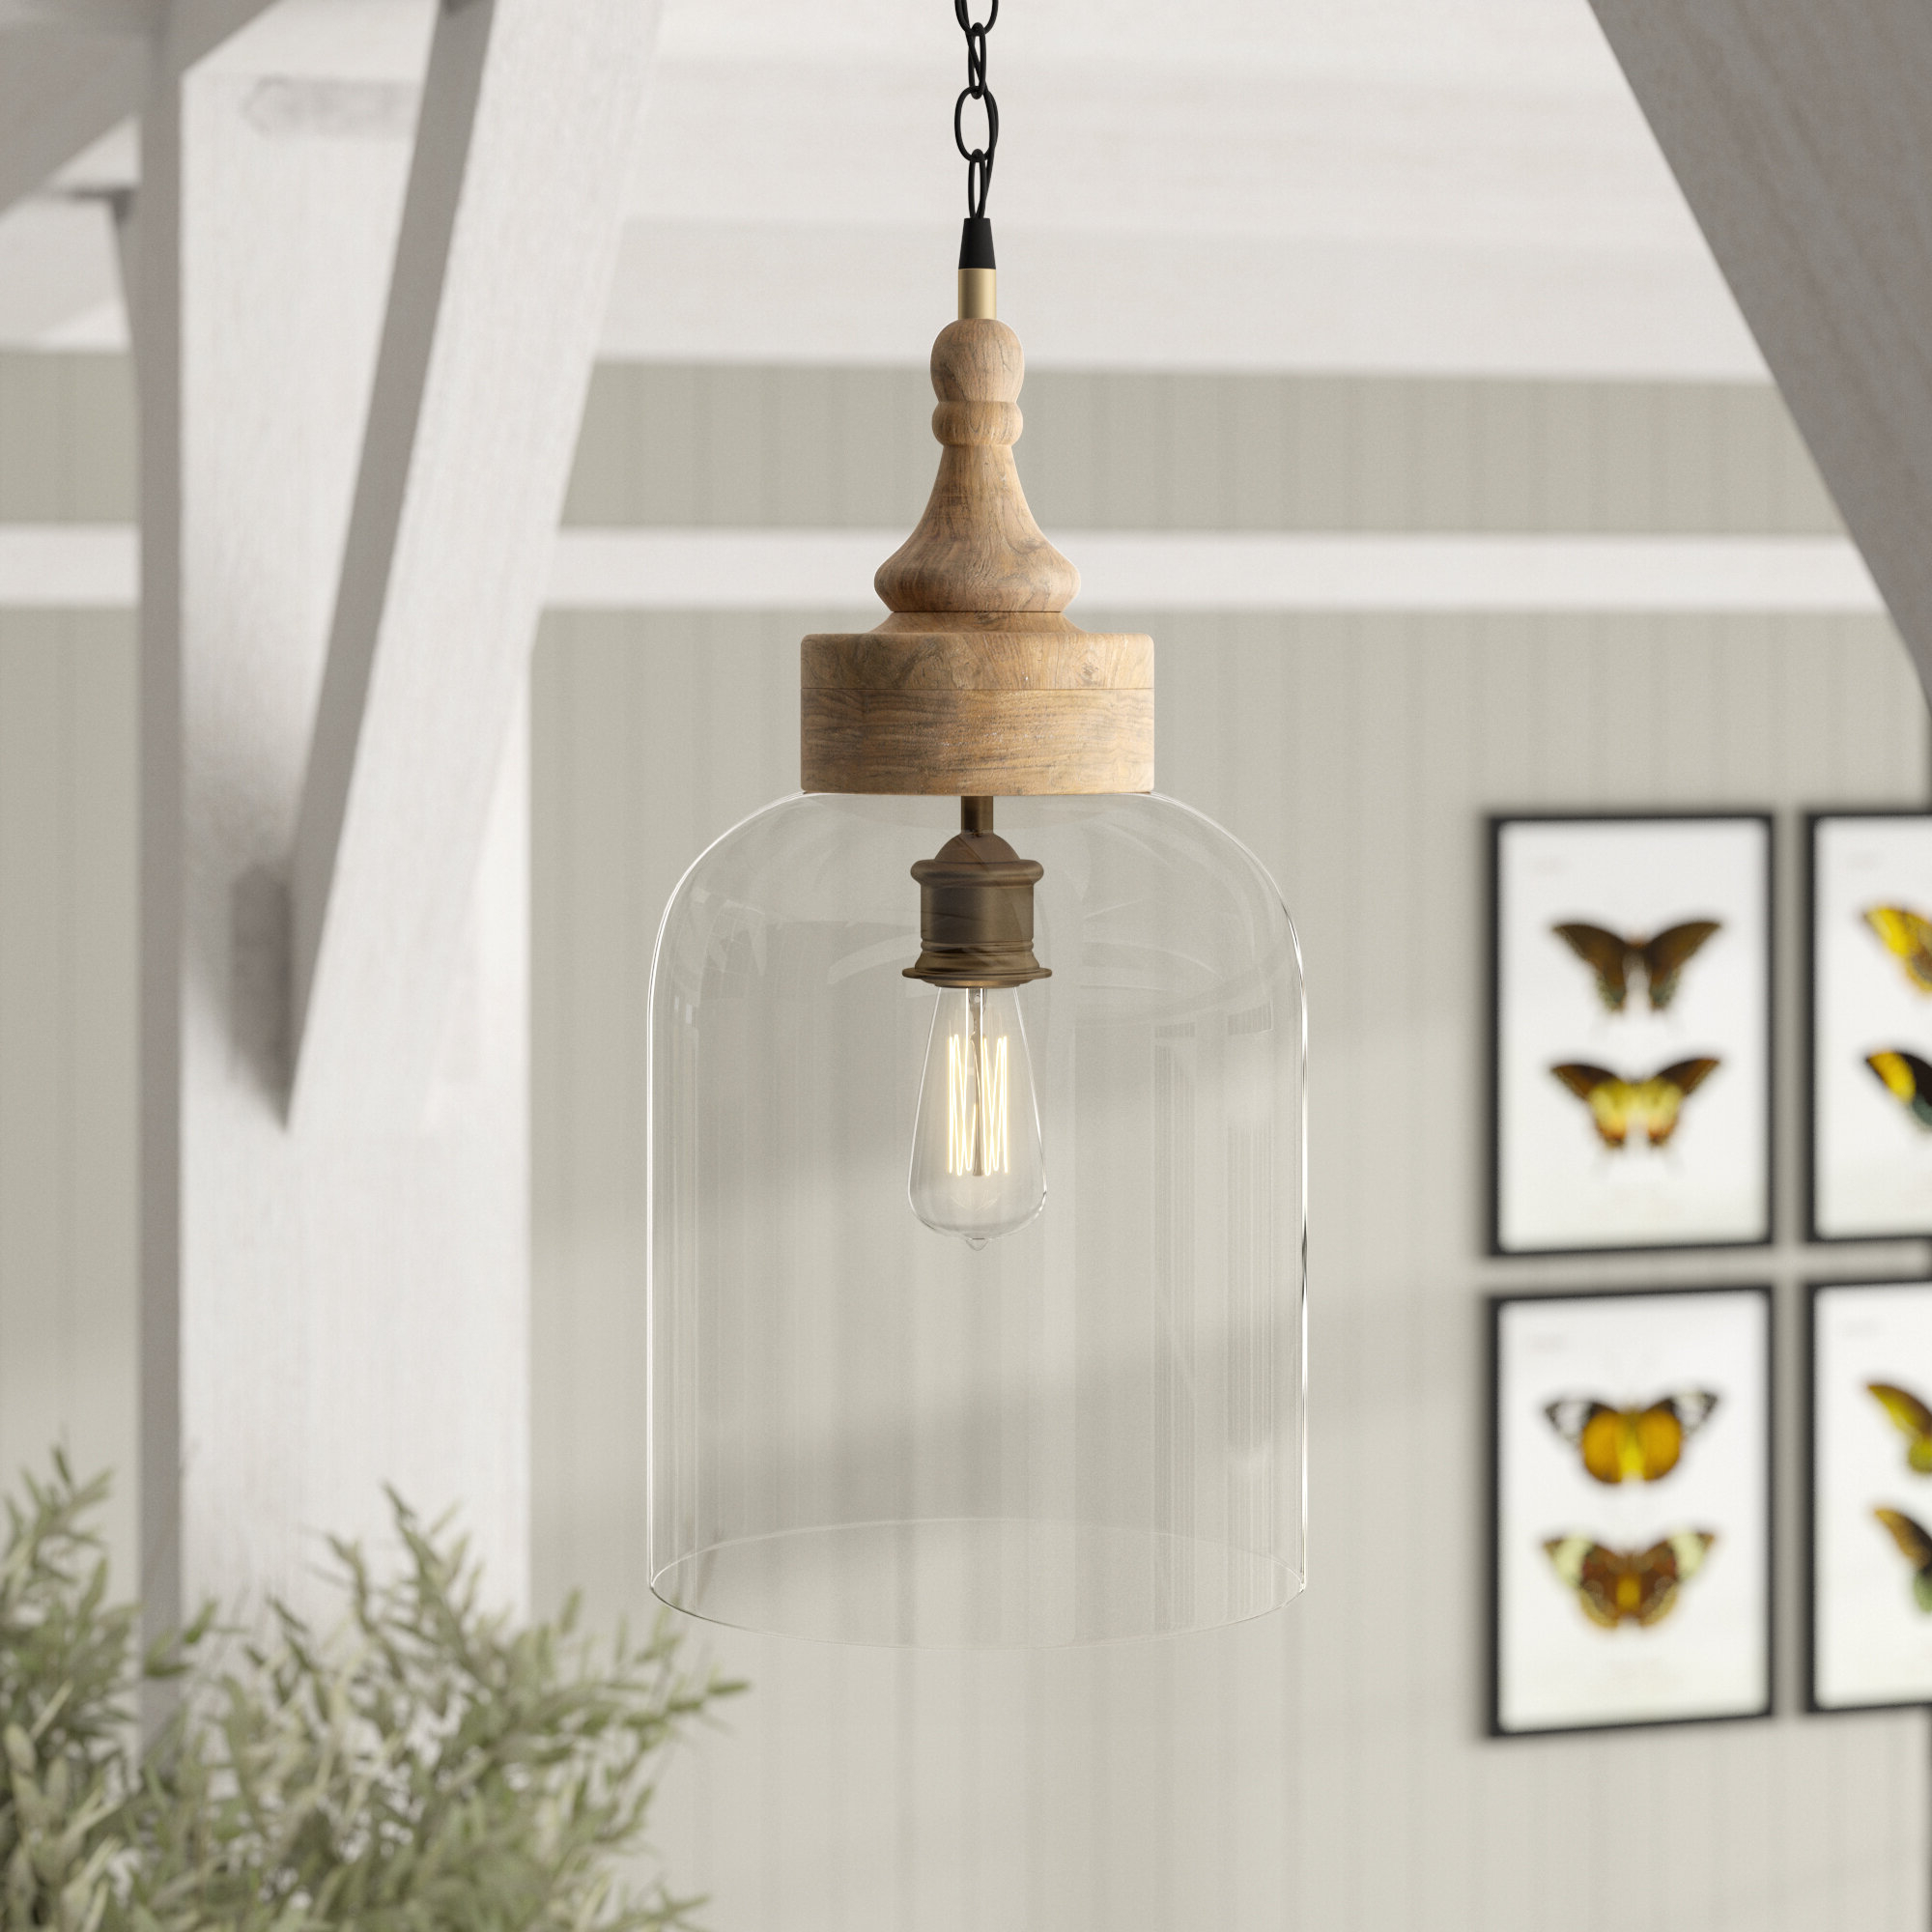 Preferred August Grove Olivo 1 Light Bell Pendant With Houon 1 Light Cone Bell Pendants (View 15 of 20)